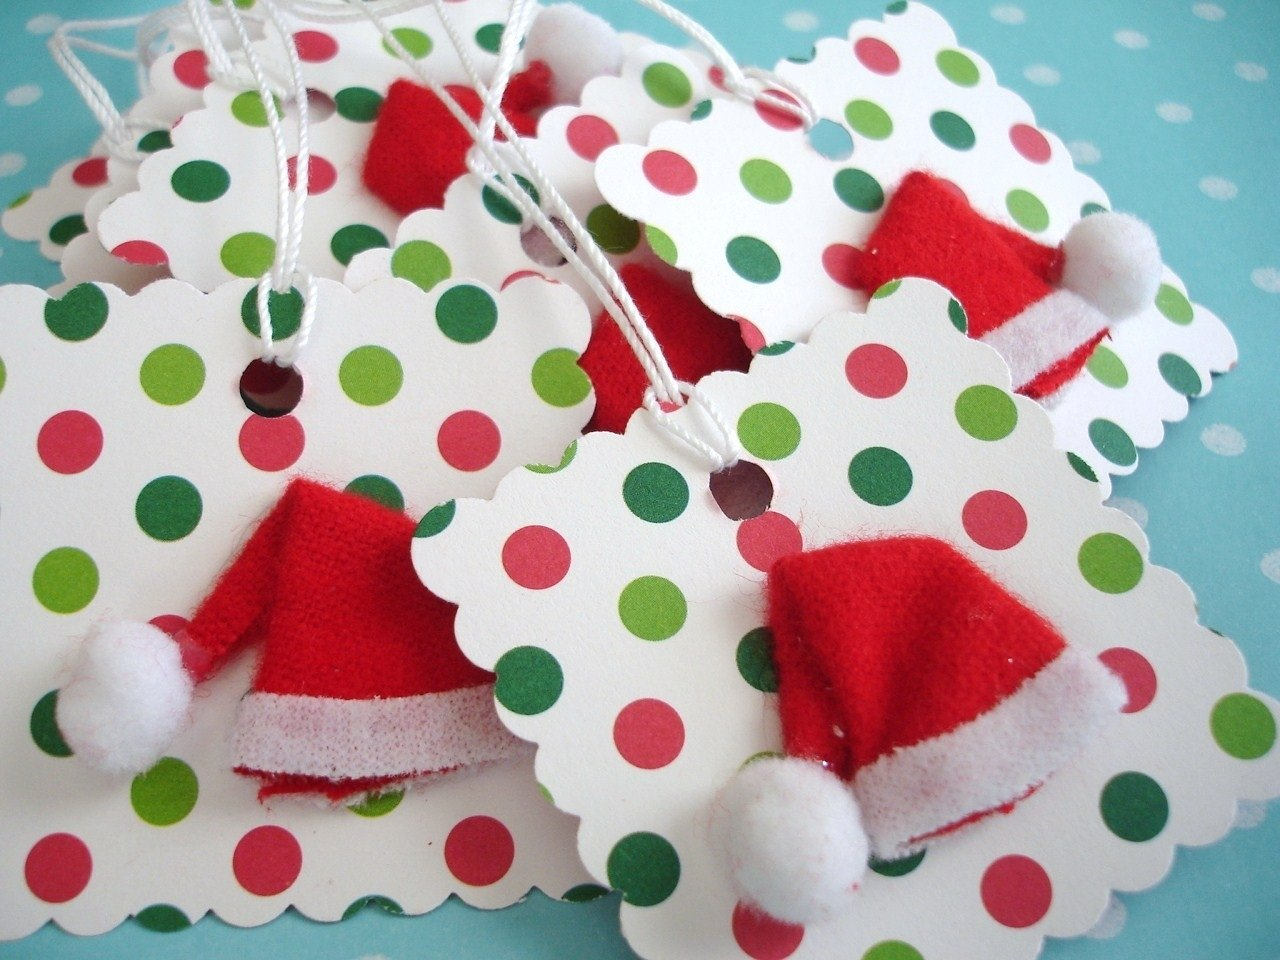 10 Ideal Christmas Ideas For Kids To Make beautiful ideas of creating handmade gifts for christmas